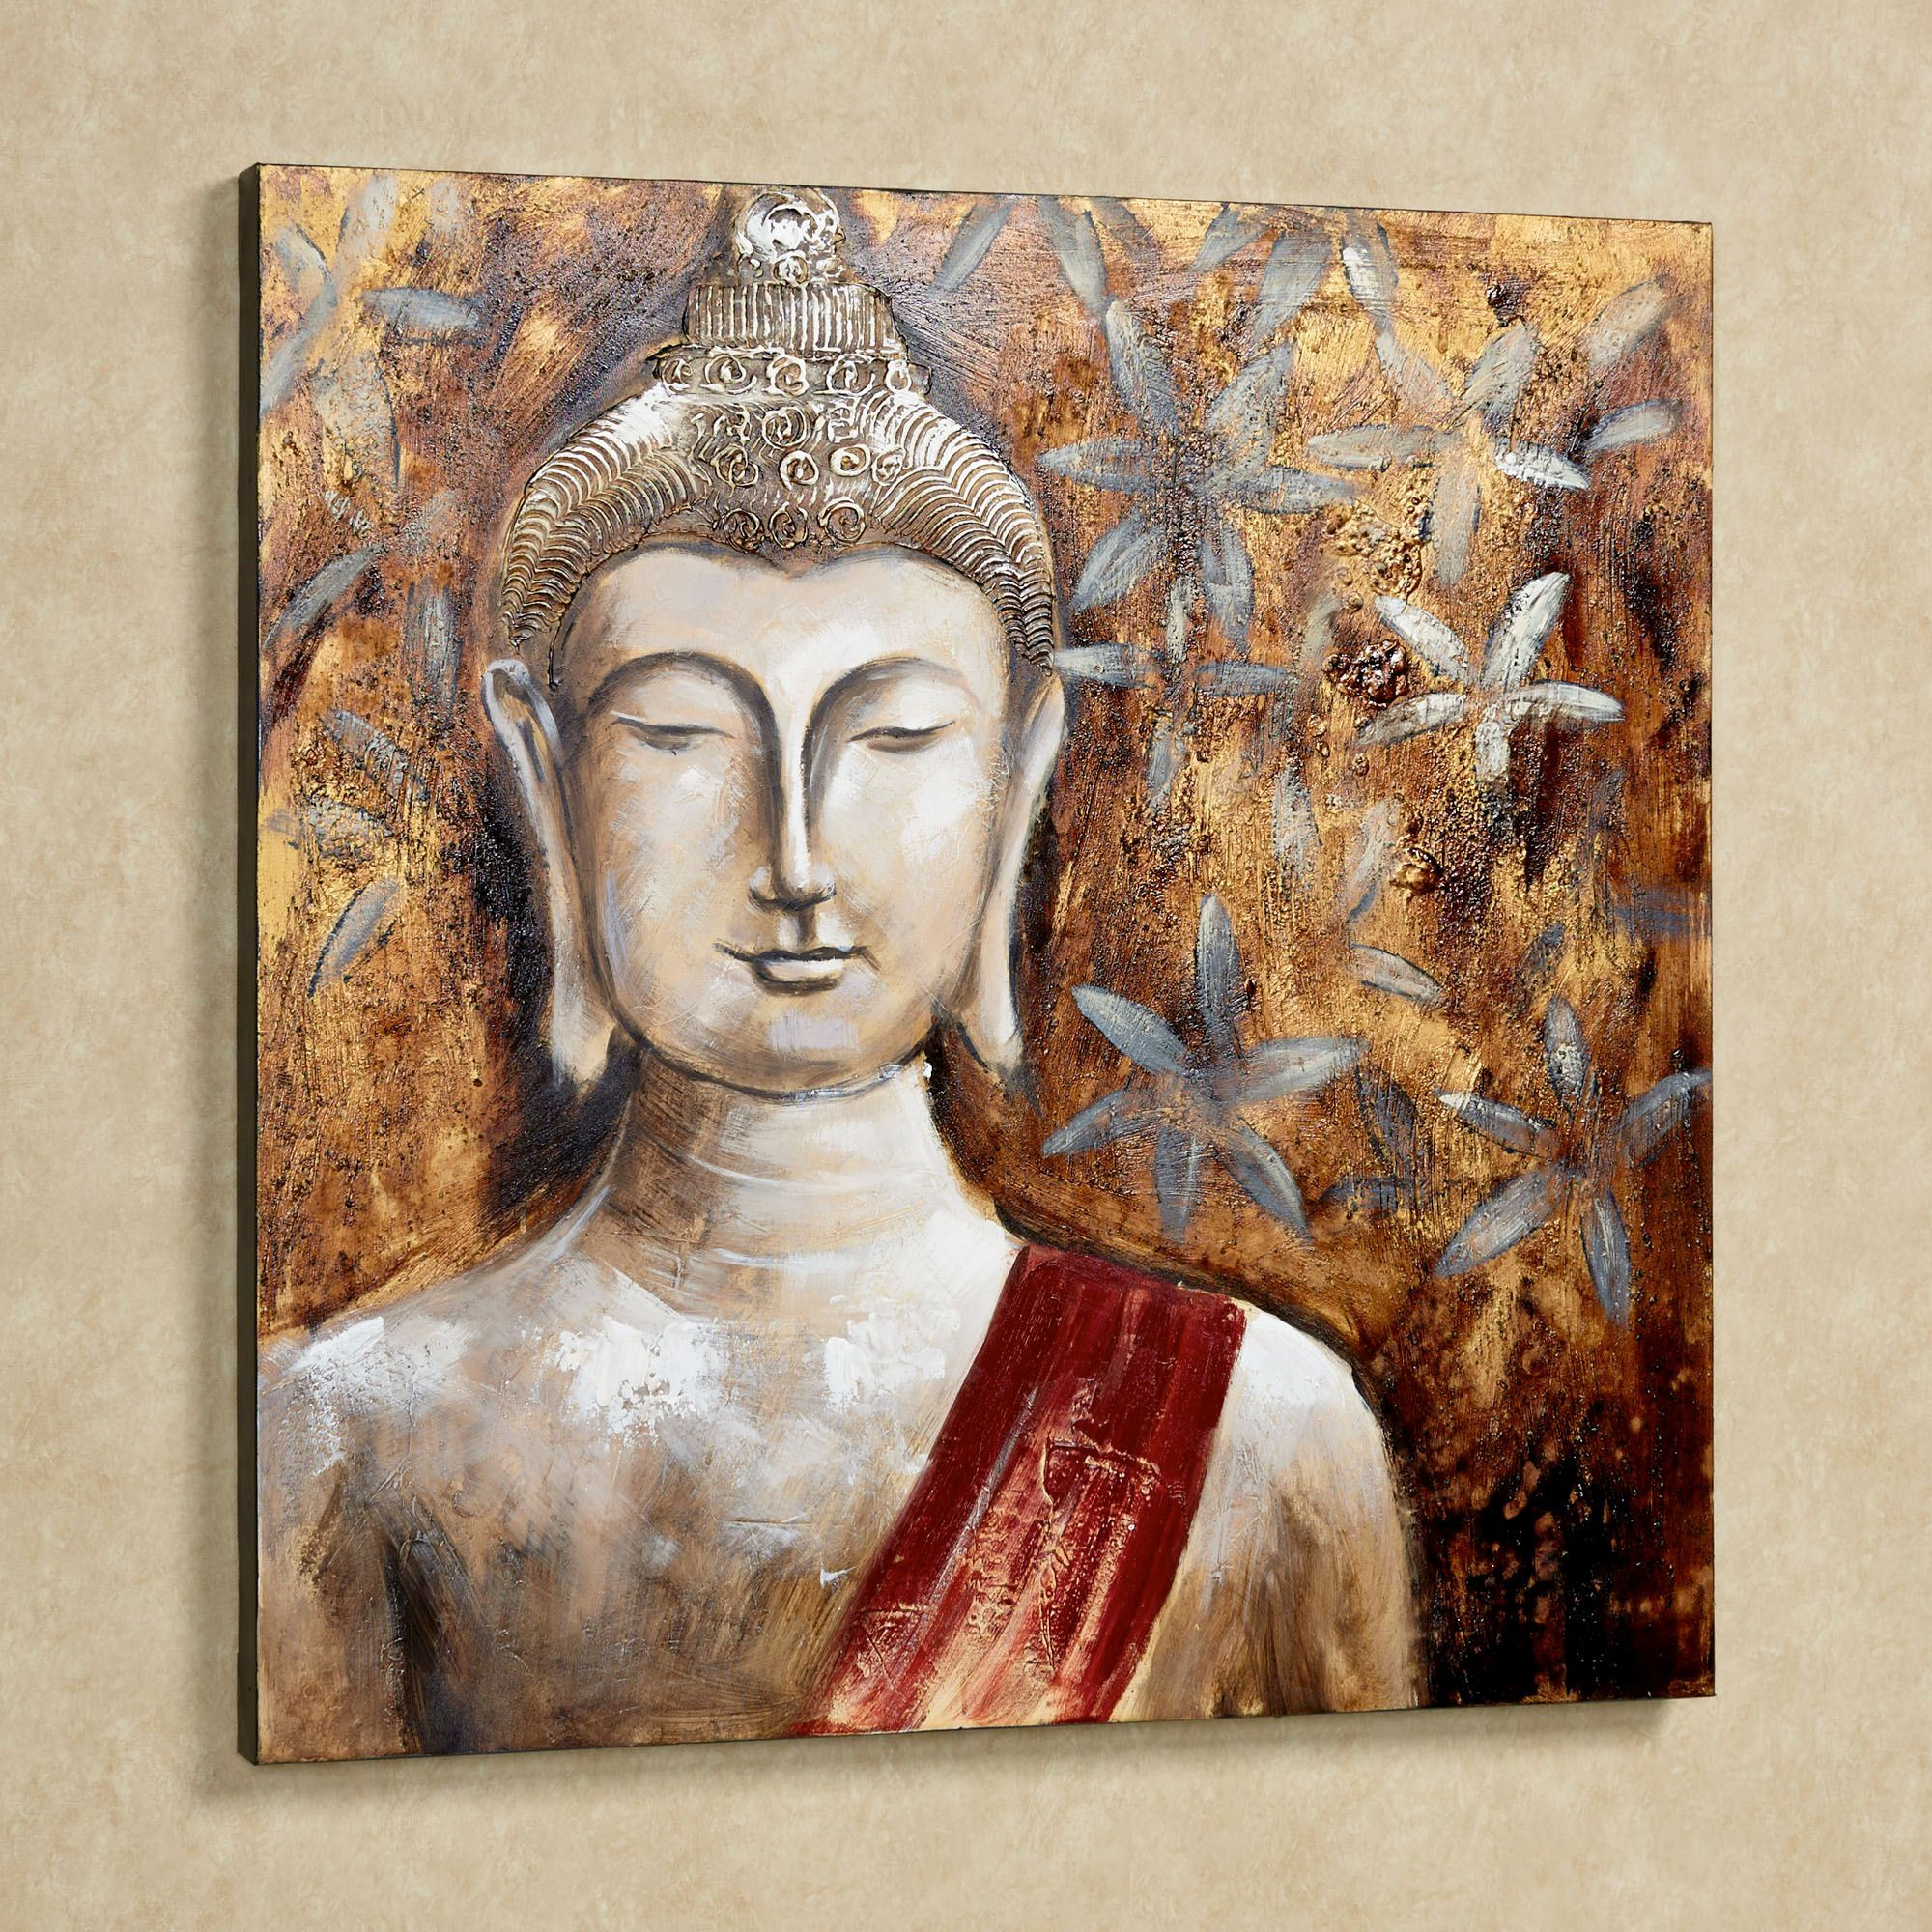 Enlightenment Buddha Handpainted Canvas Art